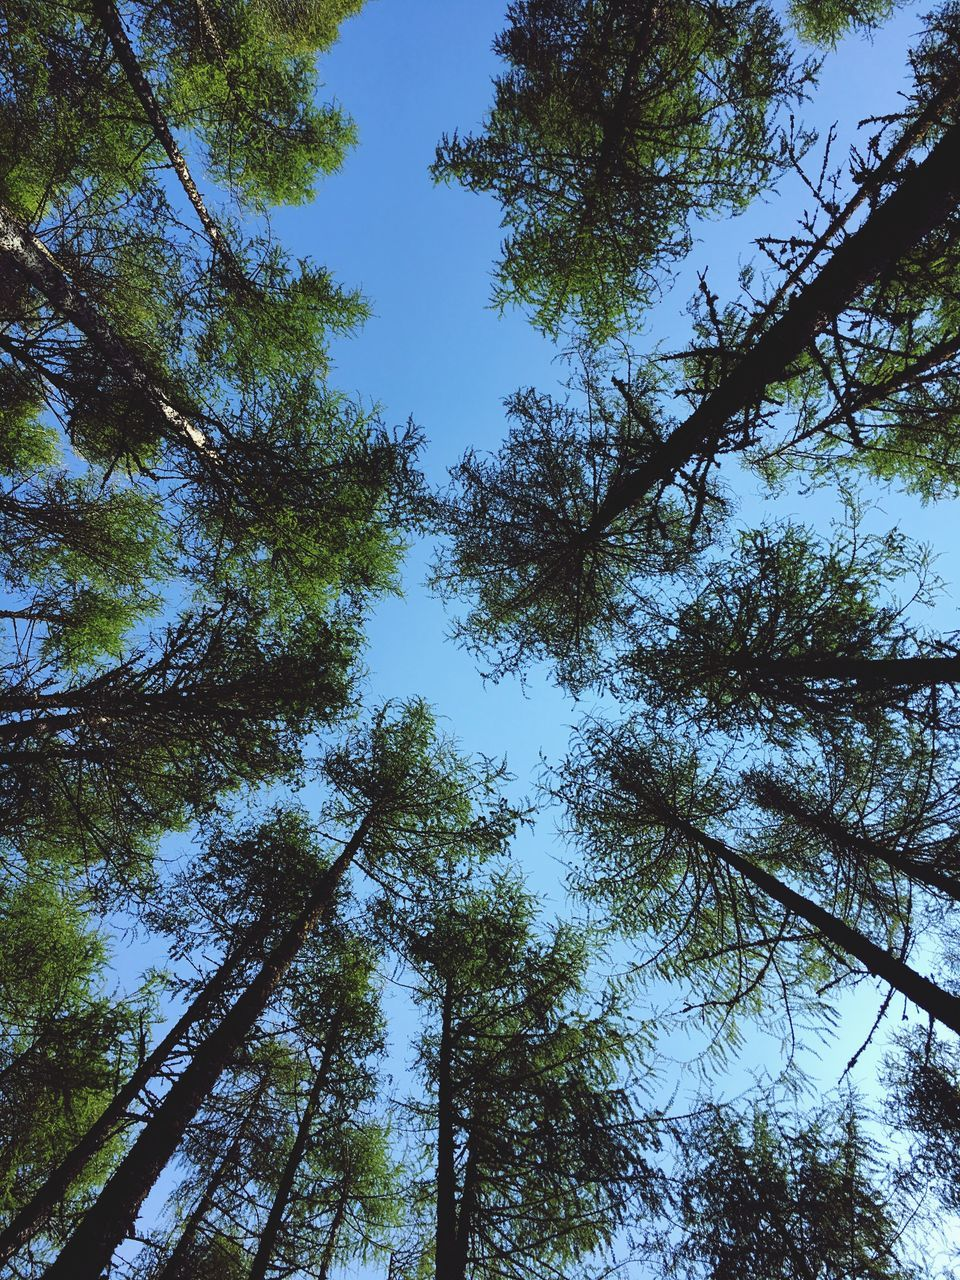 tree, low angle view, forest, growth, nature, tree trunk, beauty in nature, day, no people, woodland, tranquility, outdoors, tranquil scene, sky, tree canopy, branch, green color, scenics, pine tree, bamboo grove, bamboo - plant, clear sky